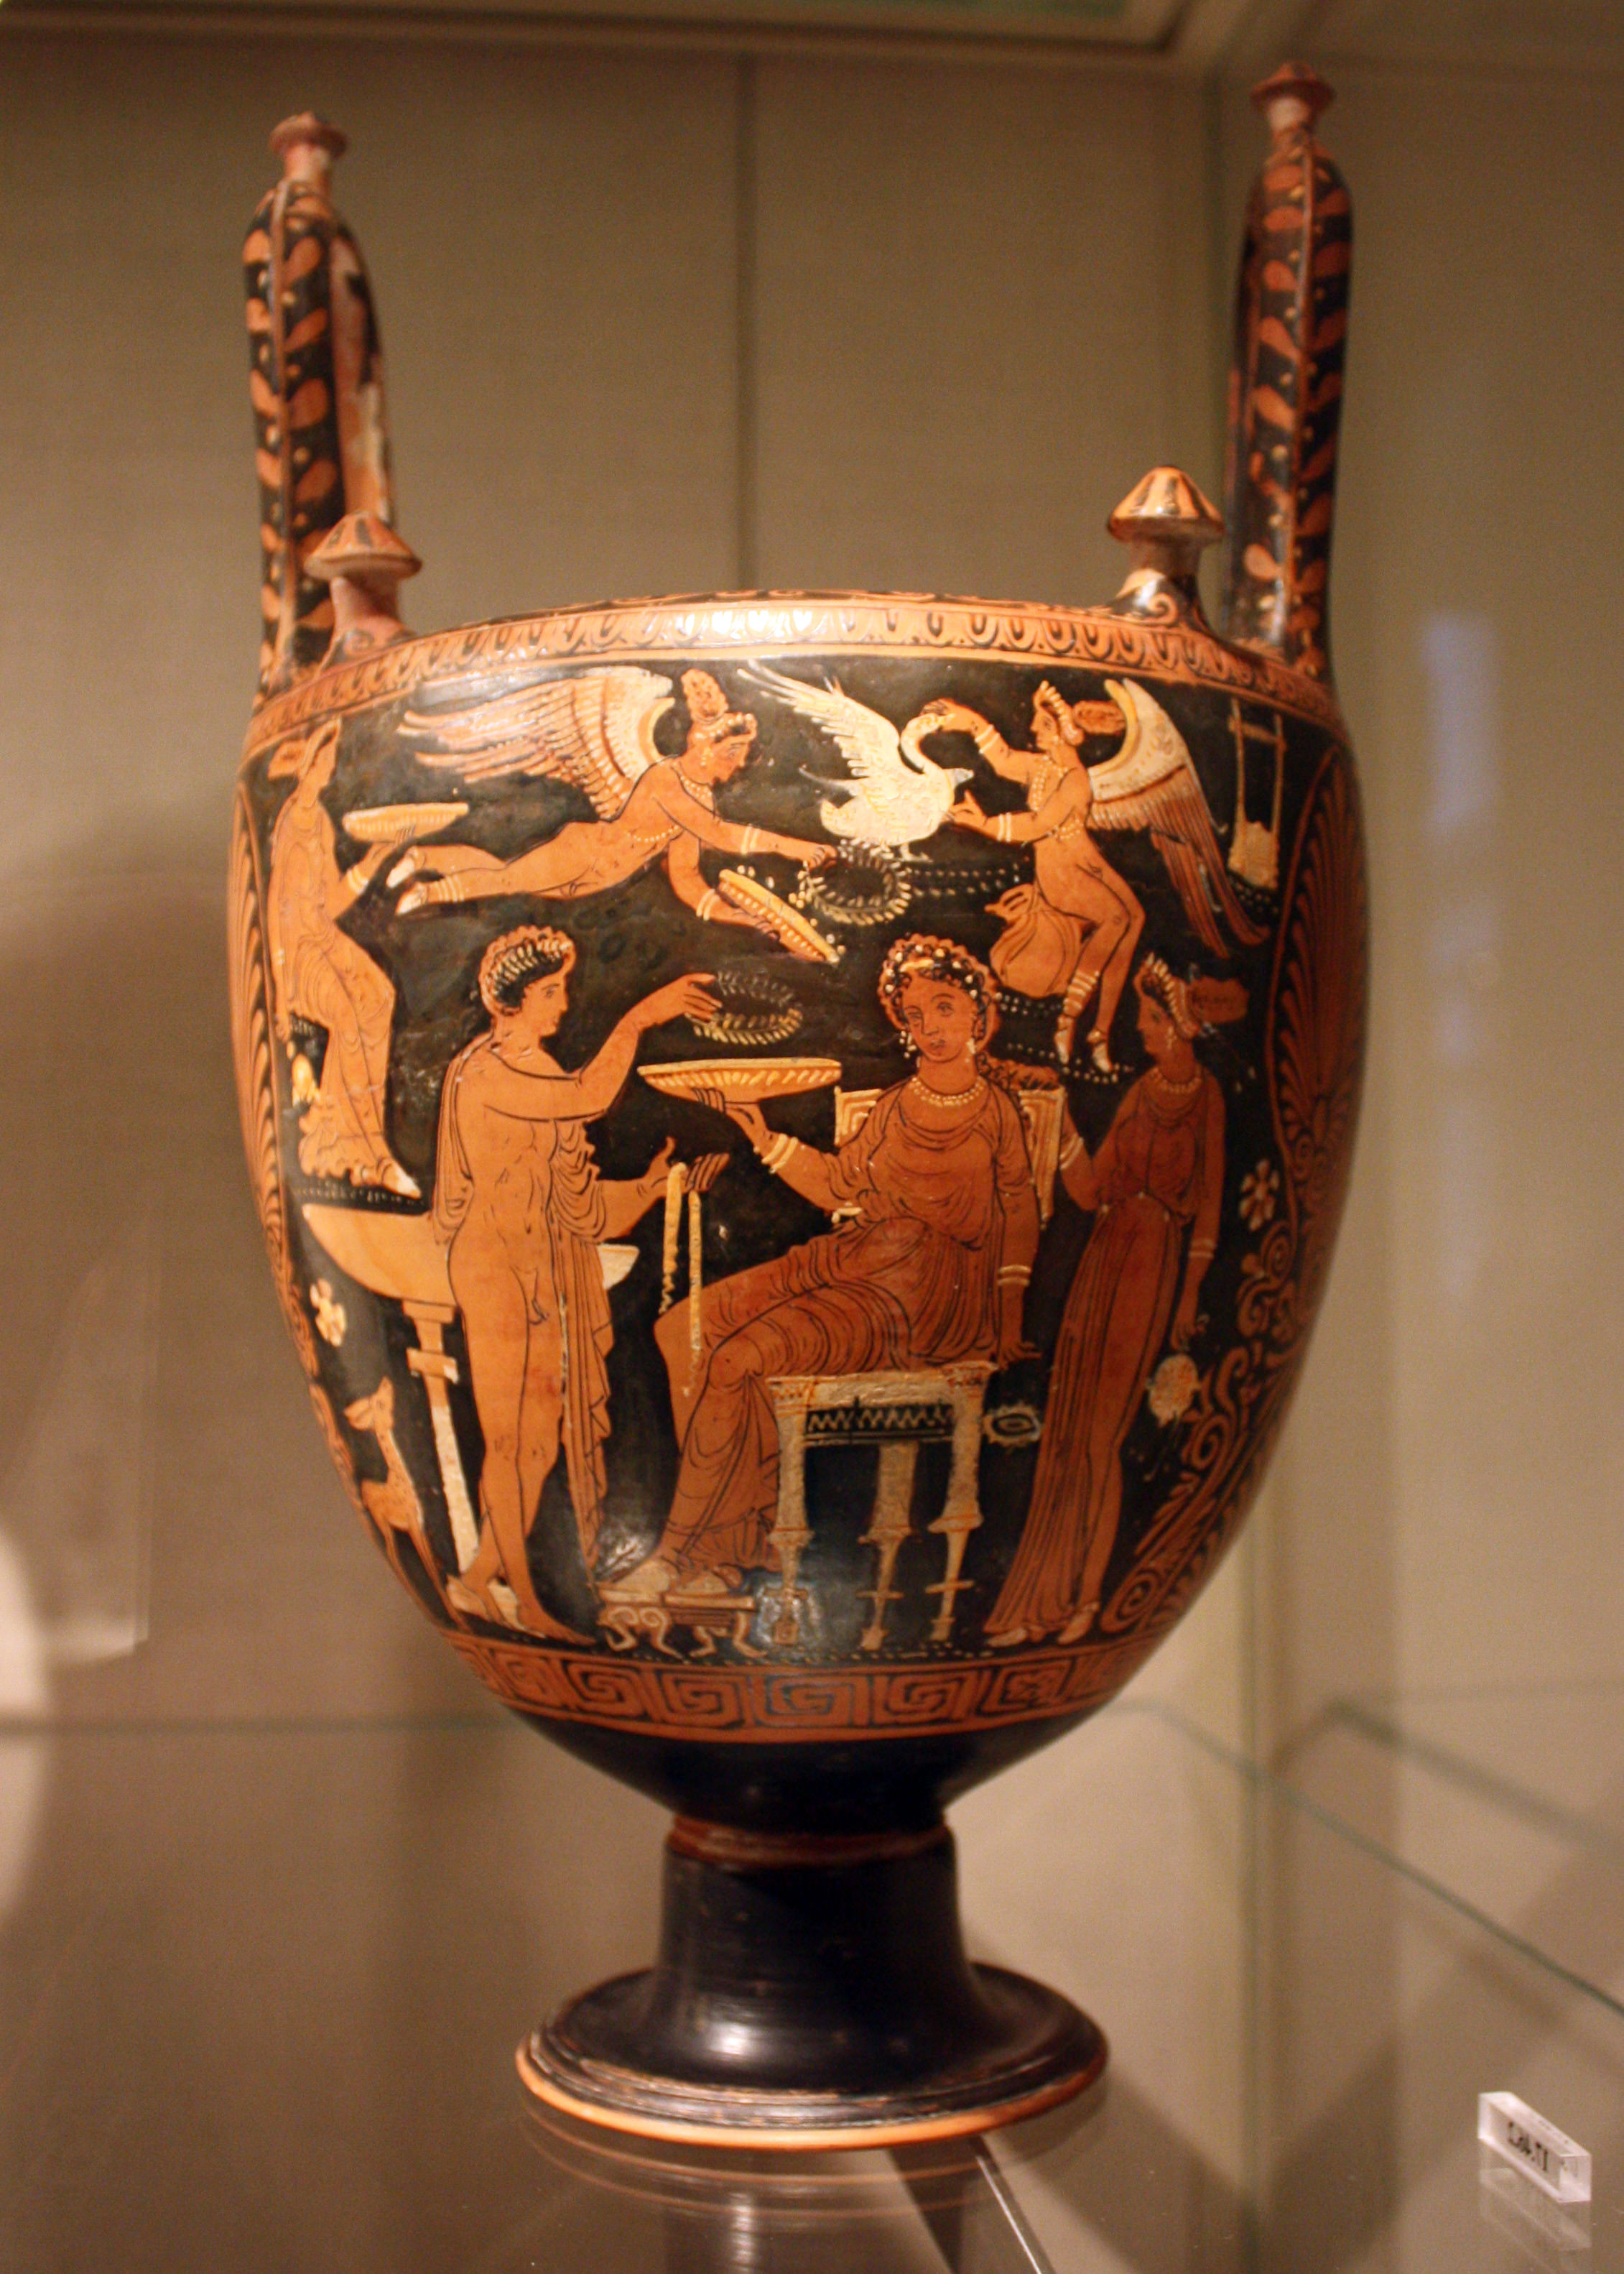 A visual glossary of greek pottery article ancient history lebes gamikos pl lebetes gamikoi a large vase with two upright handles often with a conical stand and lid used during marriage and burial ceremonies reviewsmspy